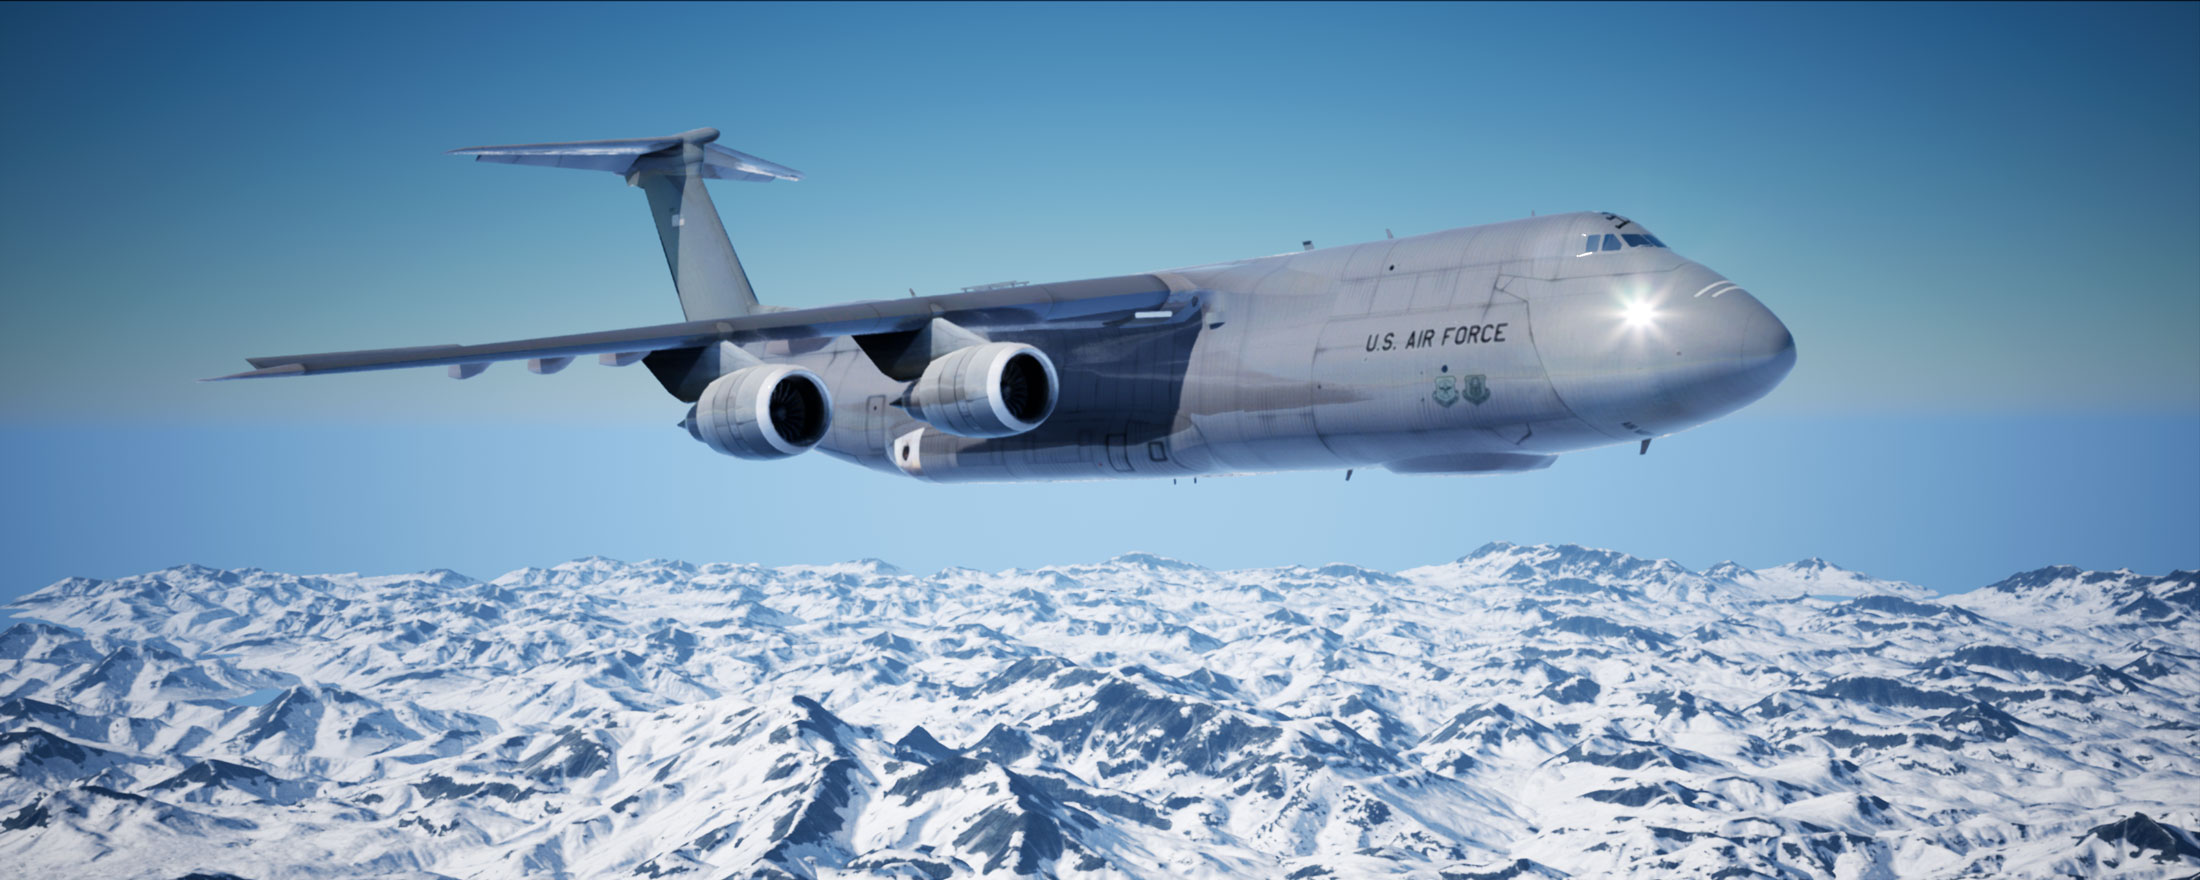 Boeing Air Force Real Time Render by Fattybull